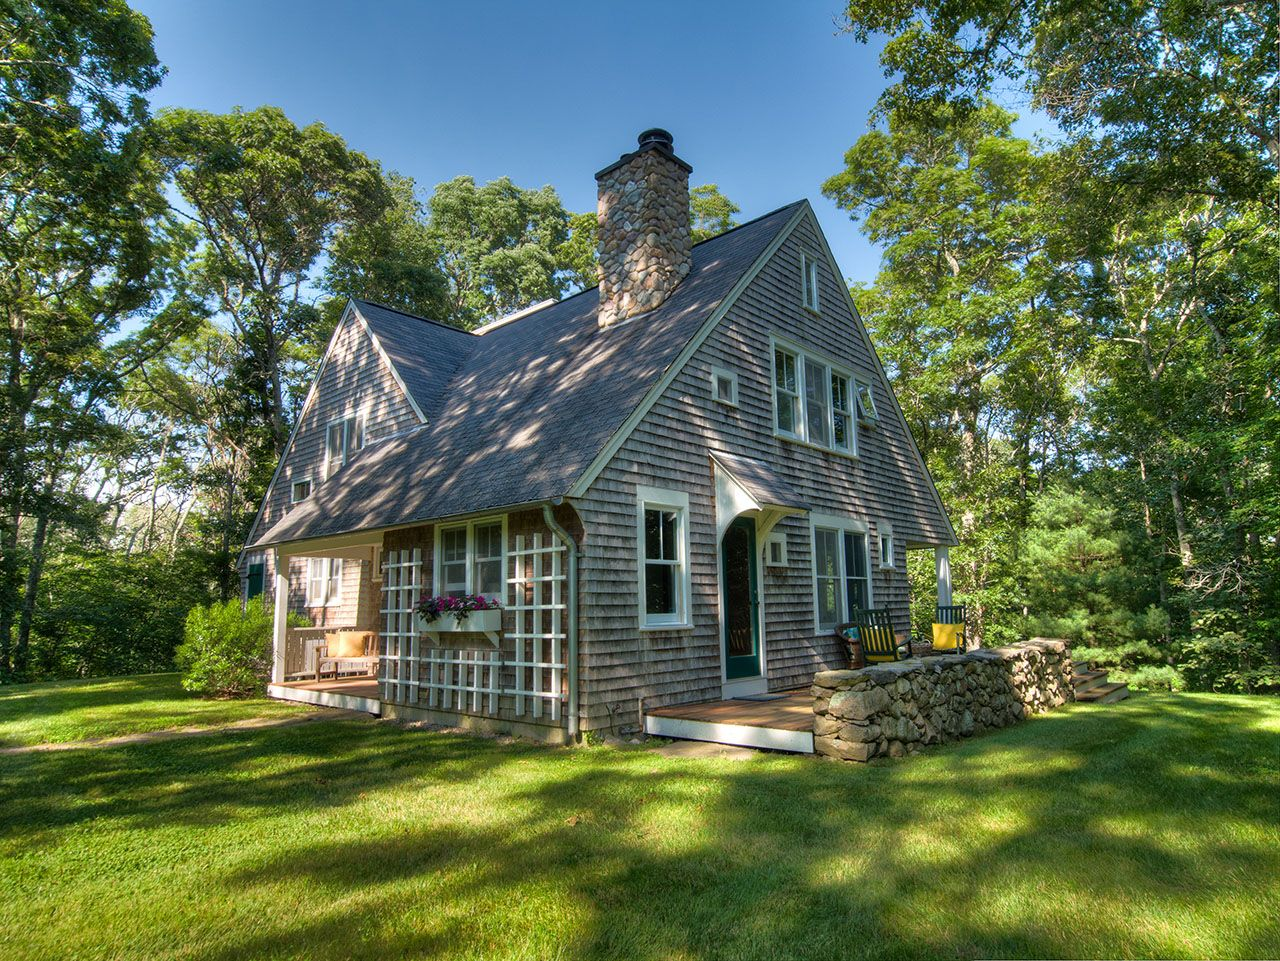 Single Family Home for Sale at 3 Old Jetty Road Dartmouth, Massachusetts,02748 United States